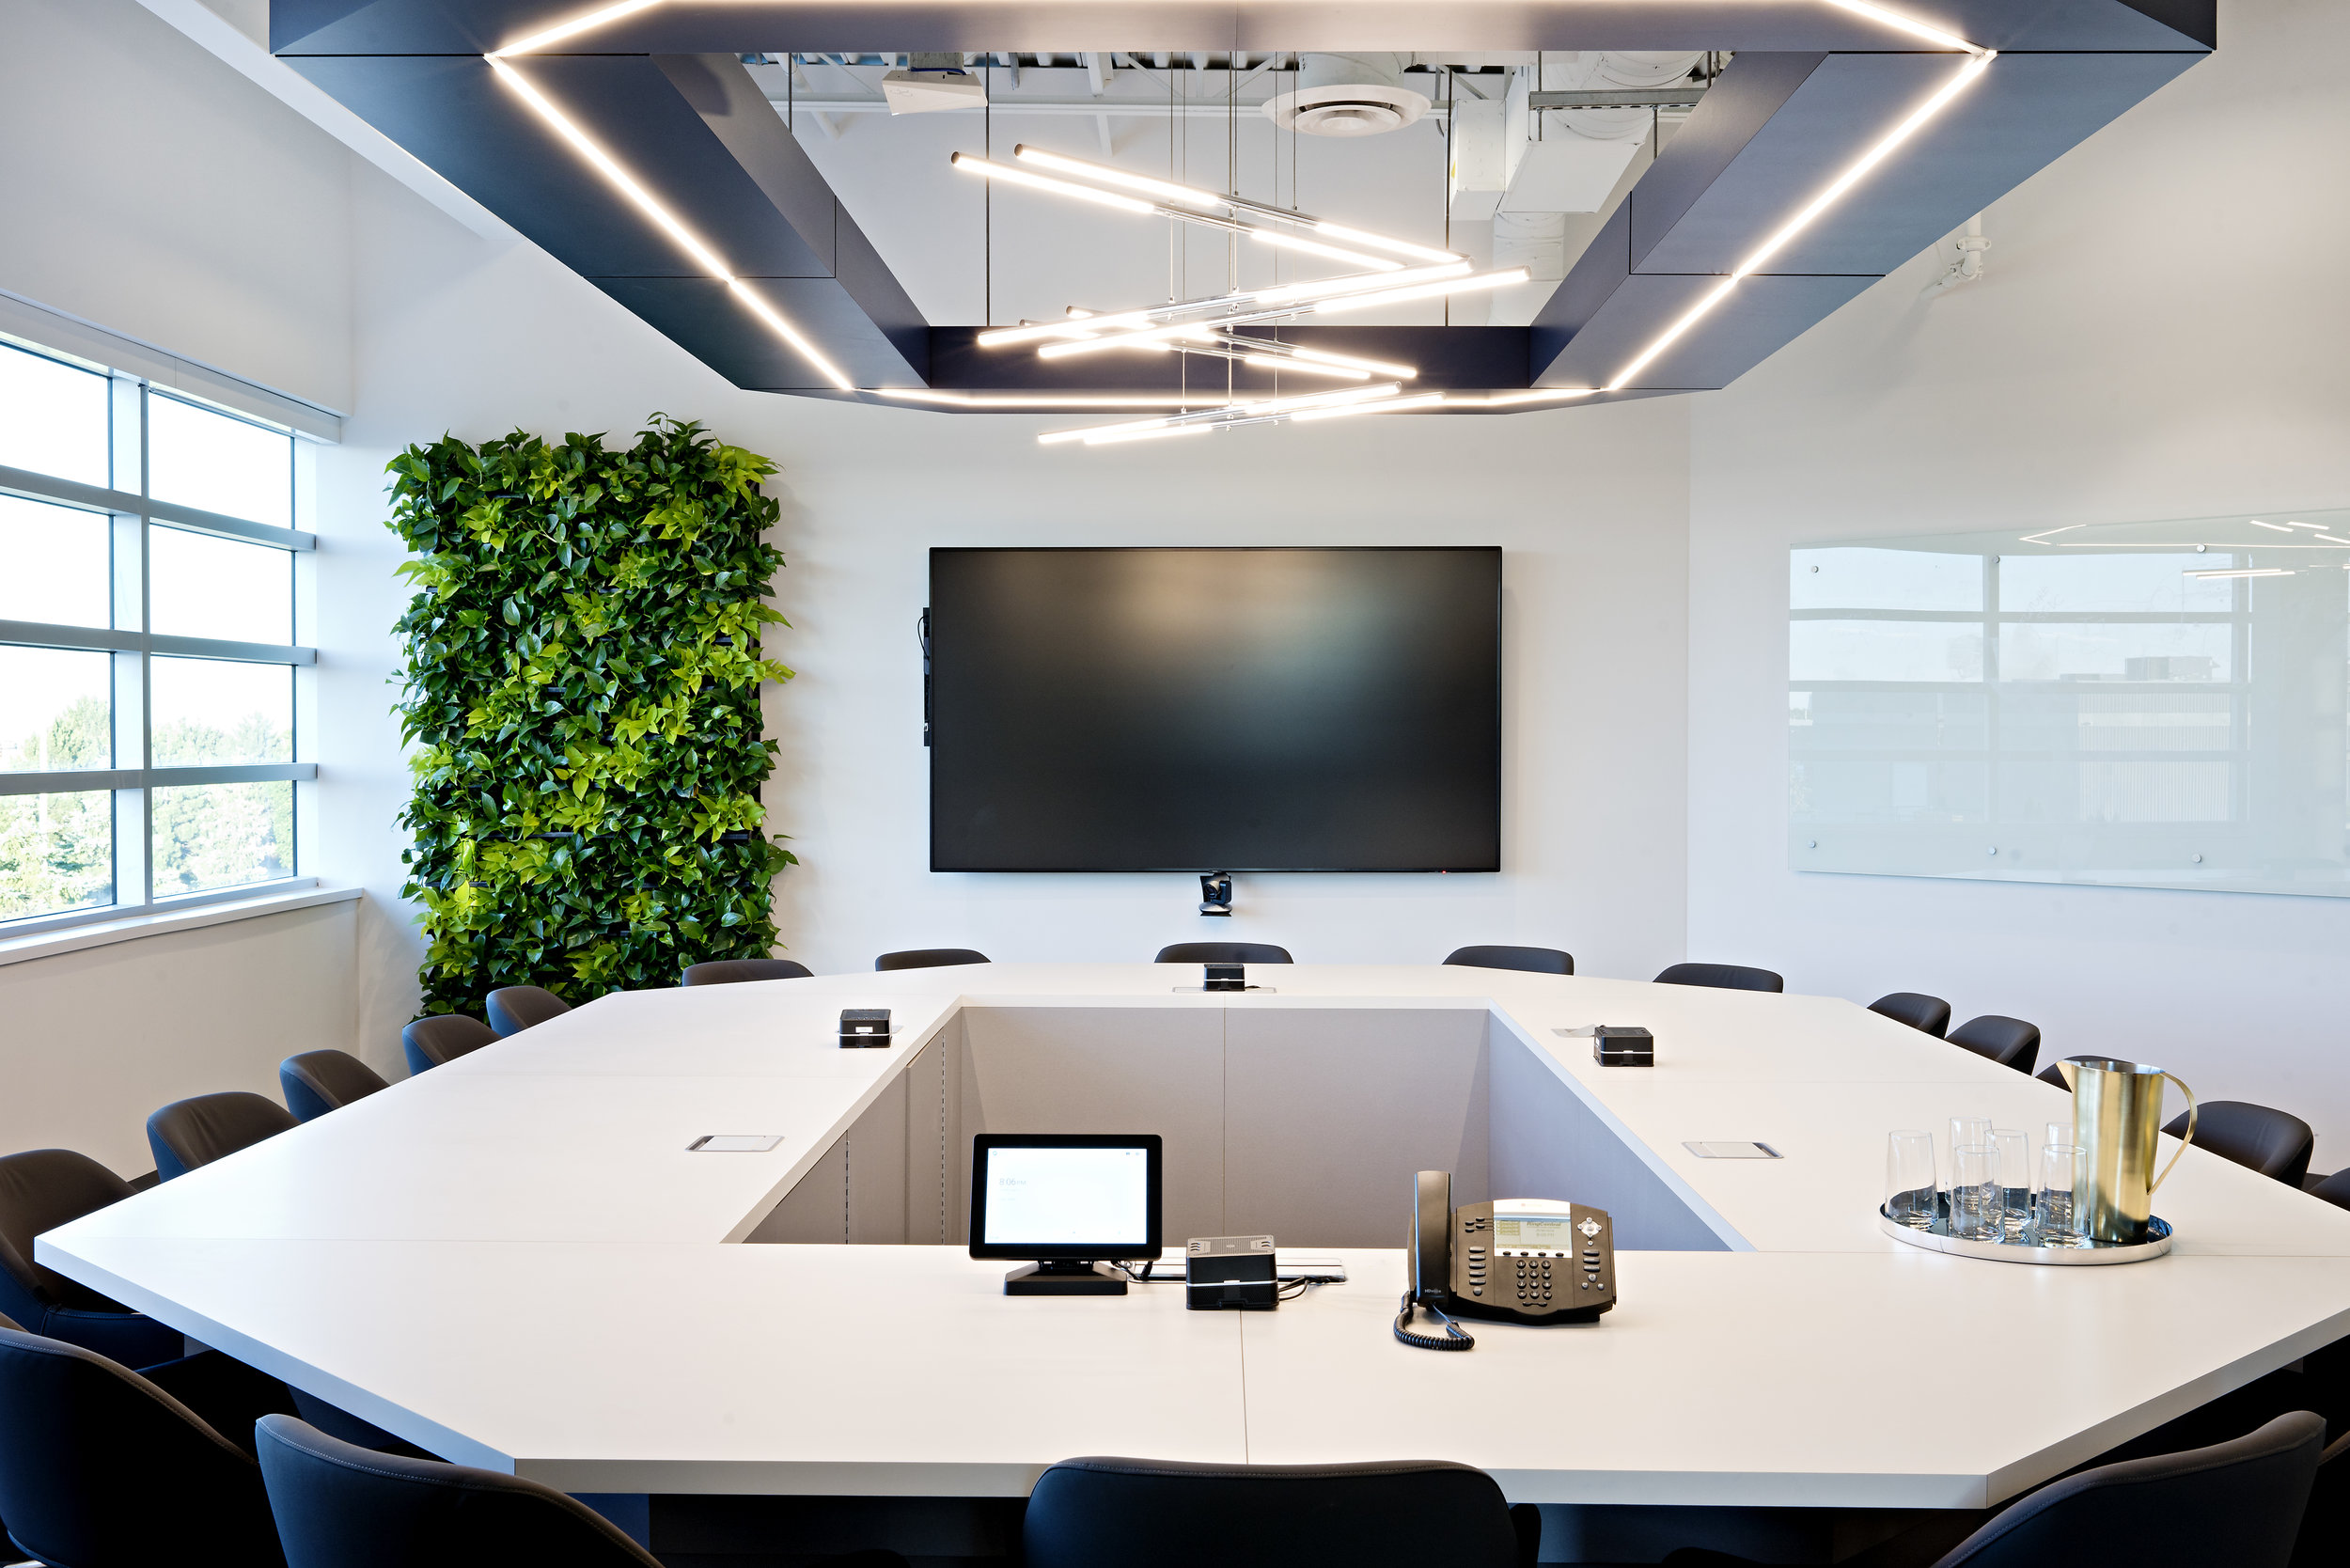 pizzale design interior design commercial office space green living wall white painted walls natural light large windows custom angled desk large wall mount tv modern contemporary light fixtures glass white board.jpg